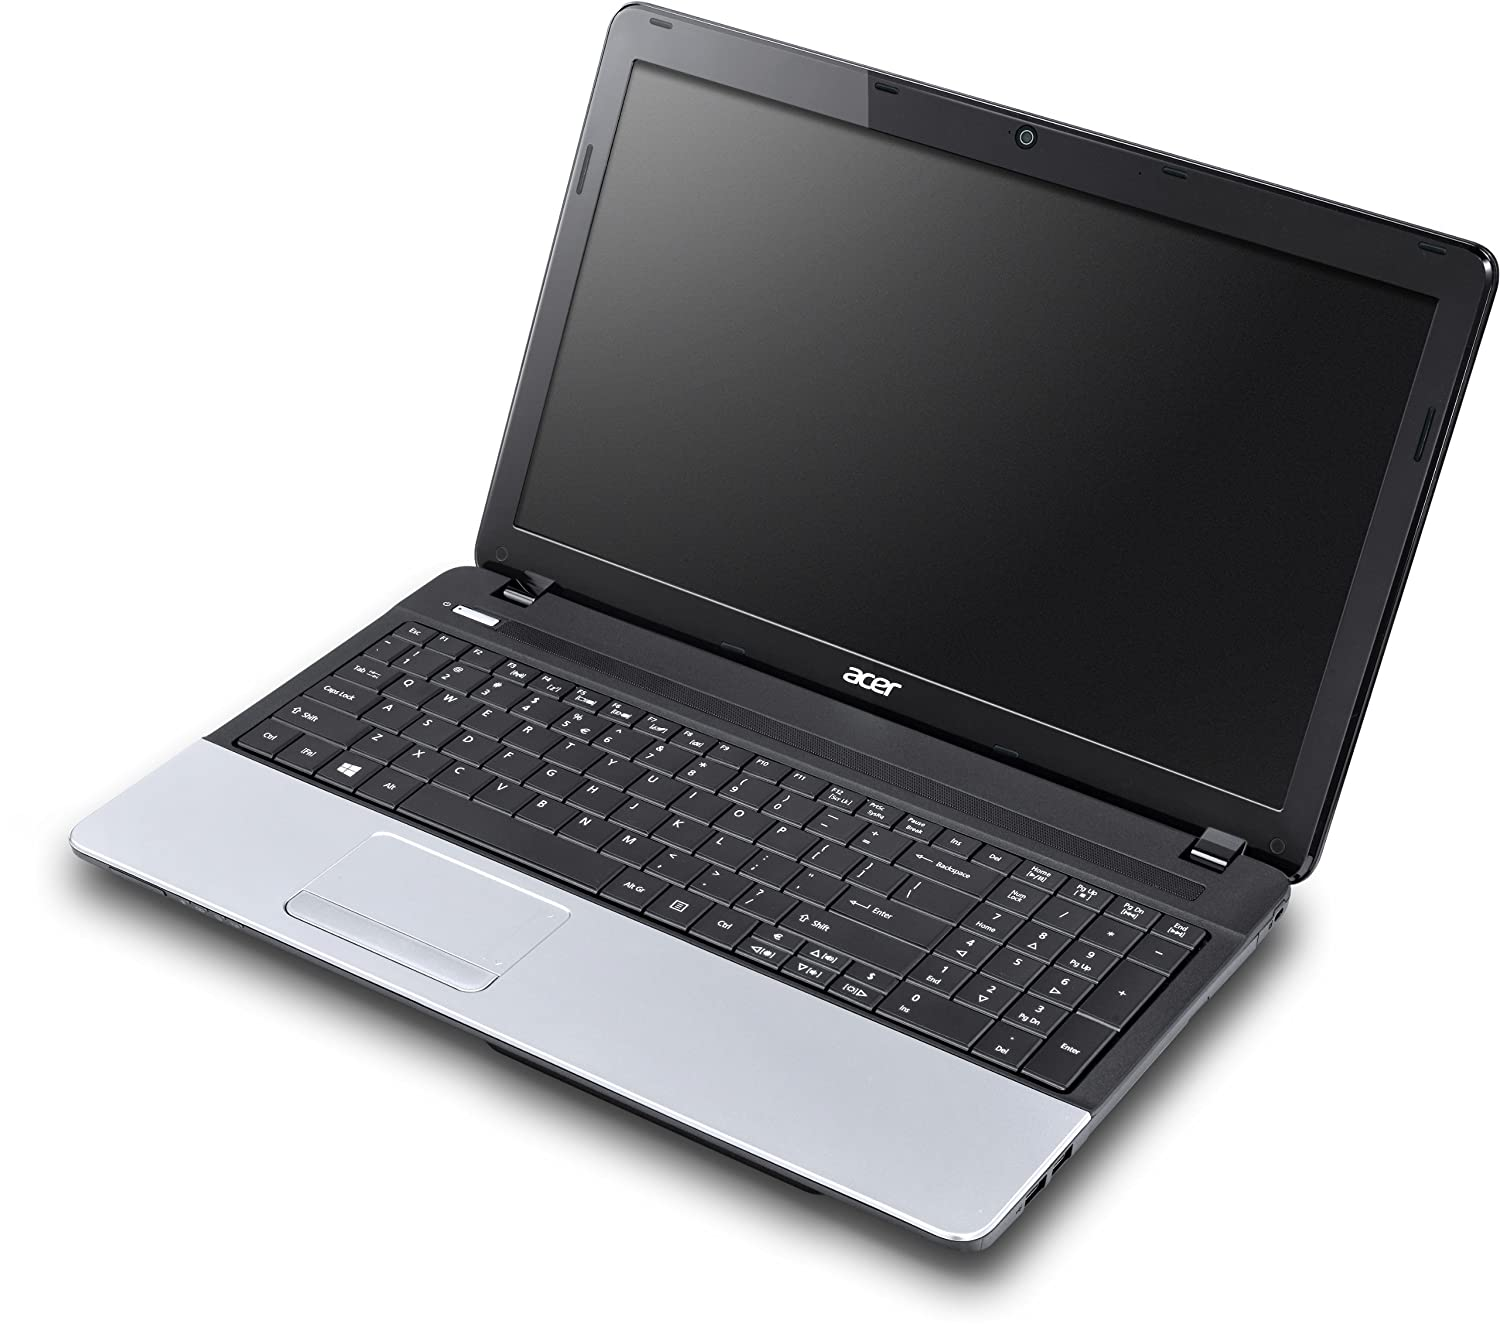 Acer TravelMate P253 M G50Mnks 39 6 cm Laptop Amazon puter & Zubehör